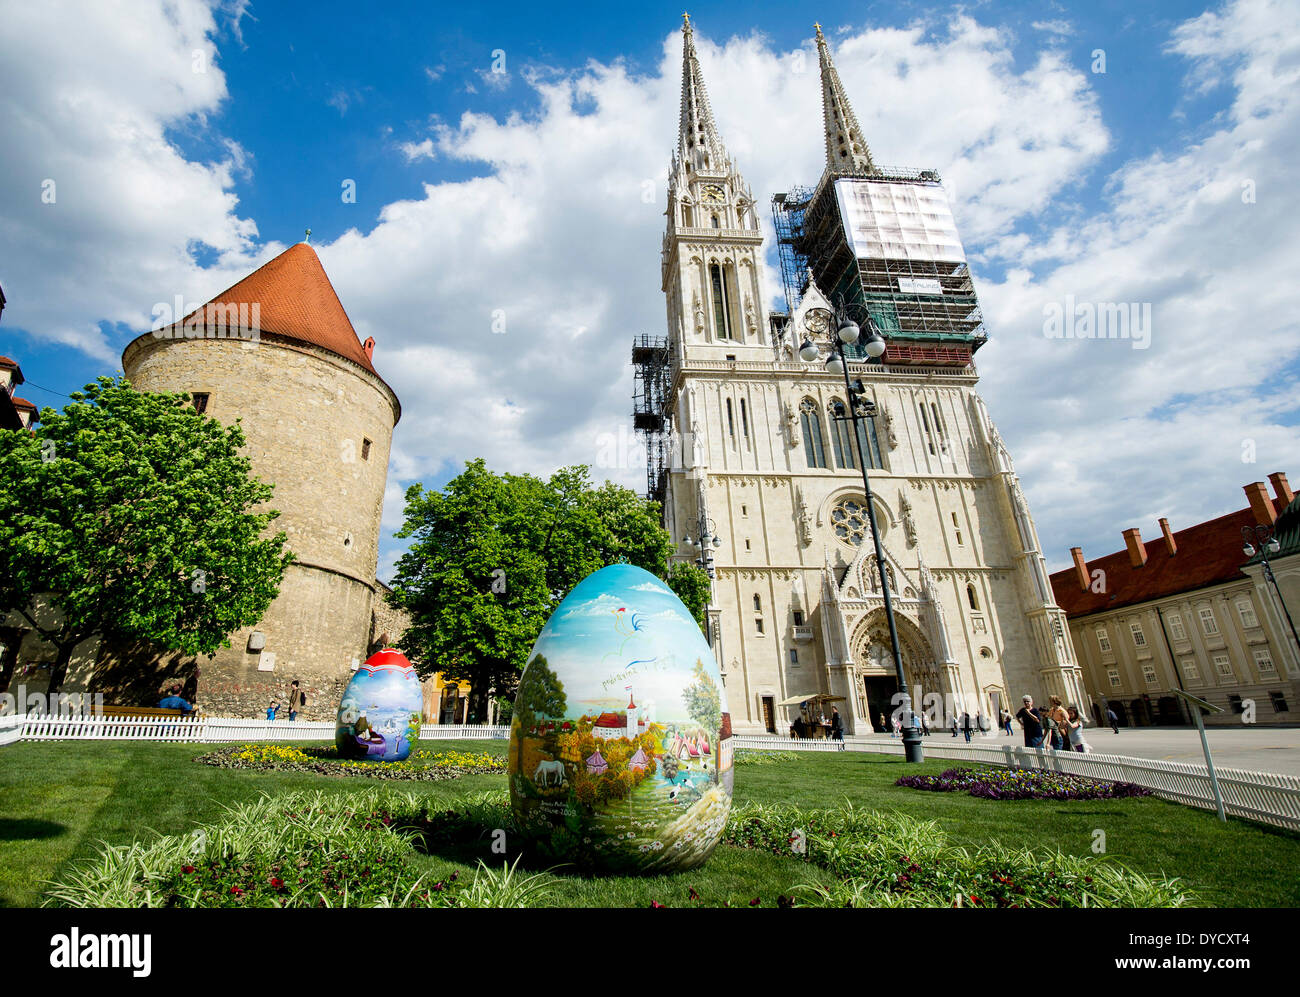 Zagreb, Croatia. 14th Apr, 2014. Photo taken on April 14, 2014 shows huge hand-painted Easter eggs on display near Stock Photo